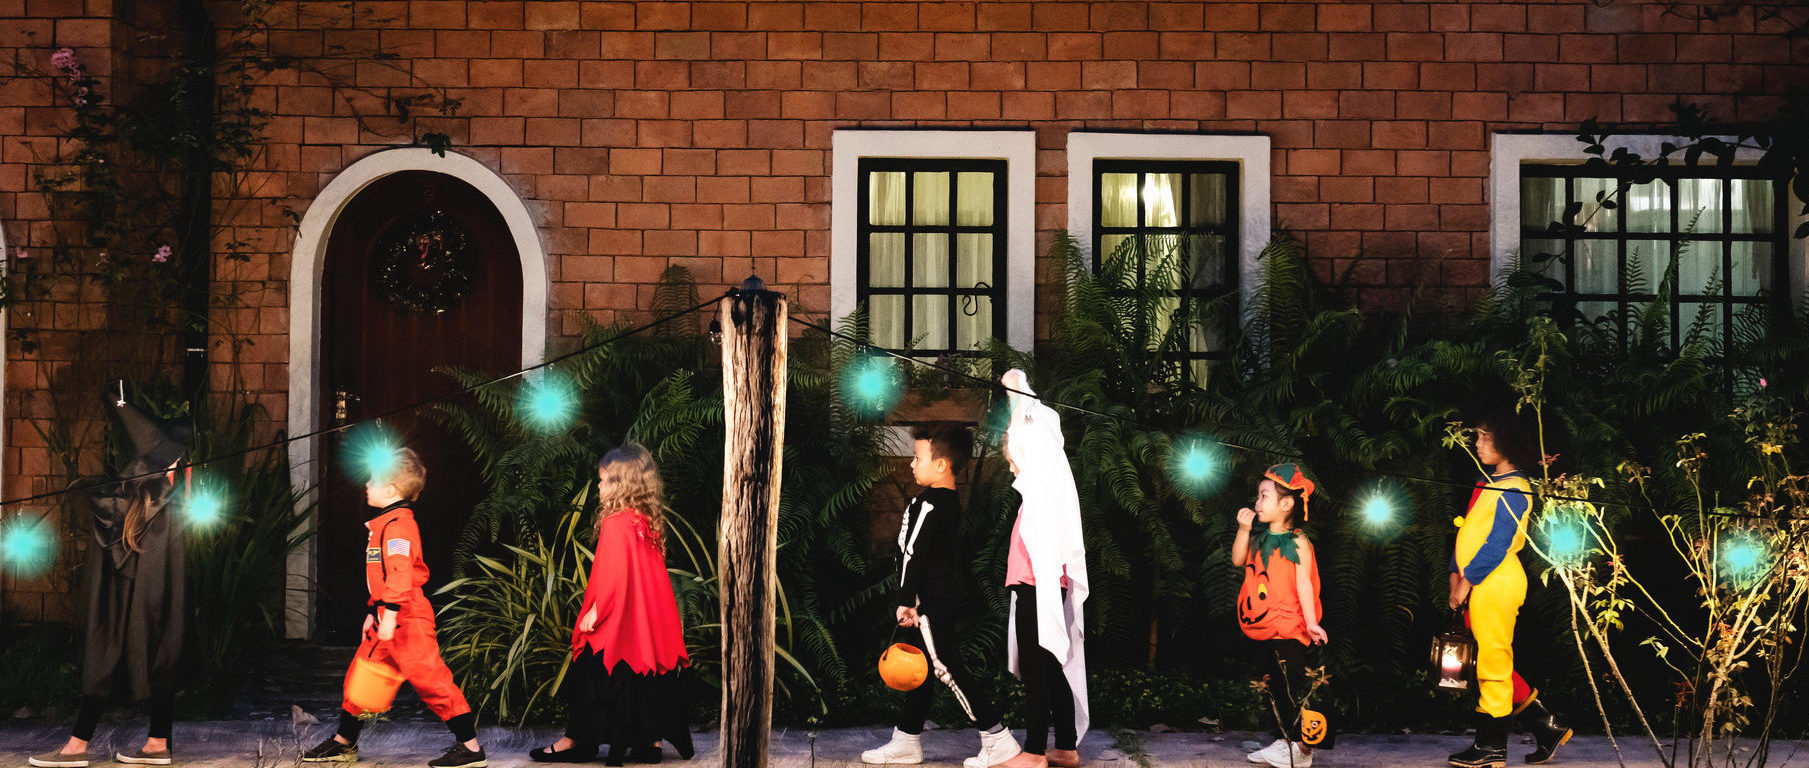 Children trick-or-treating while keeping social distance